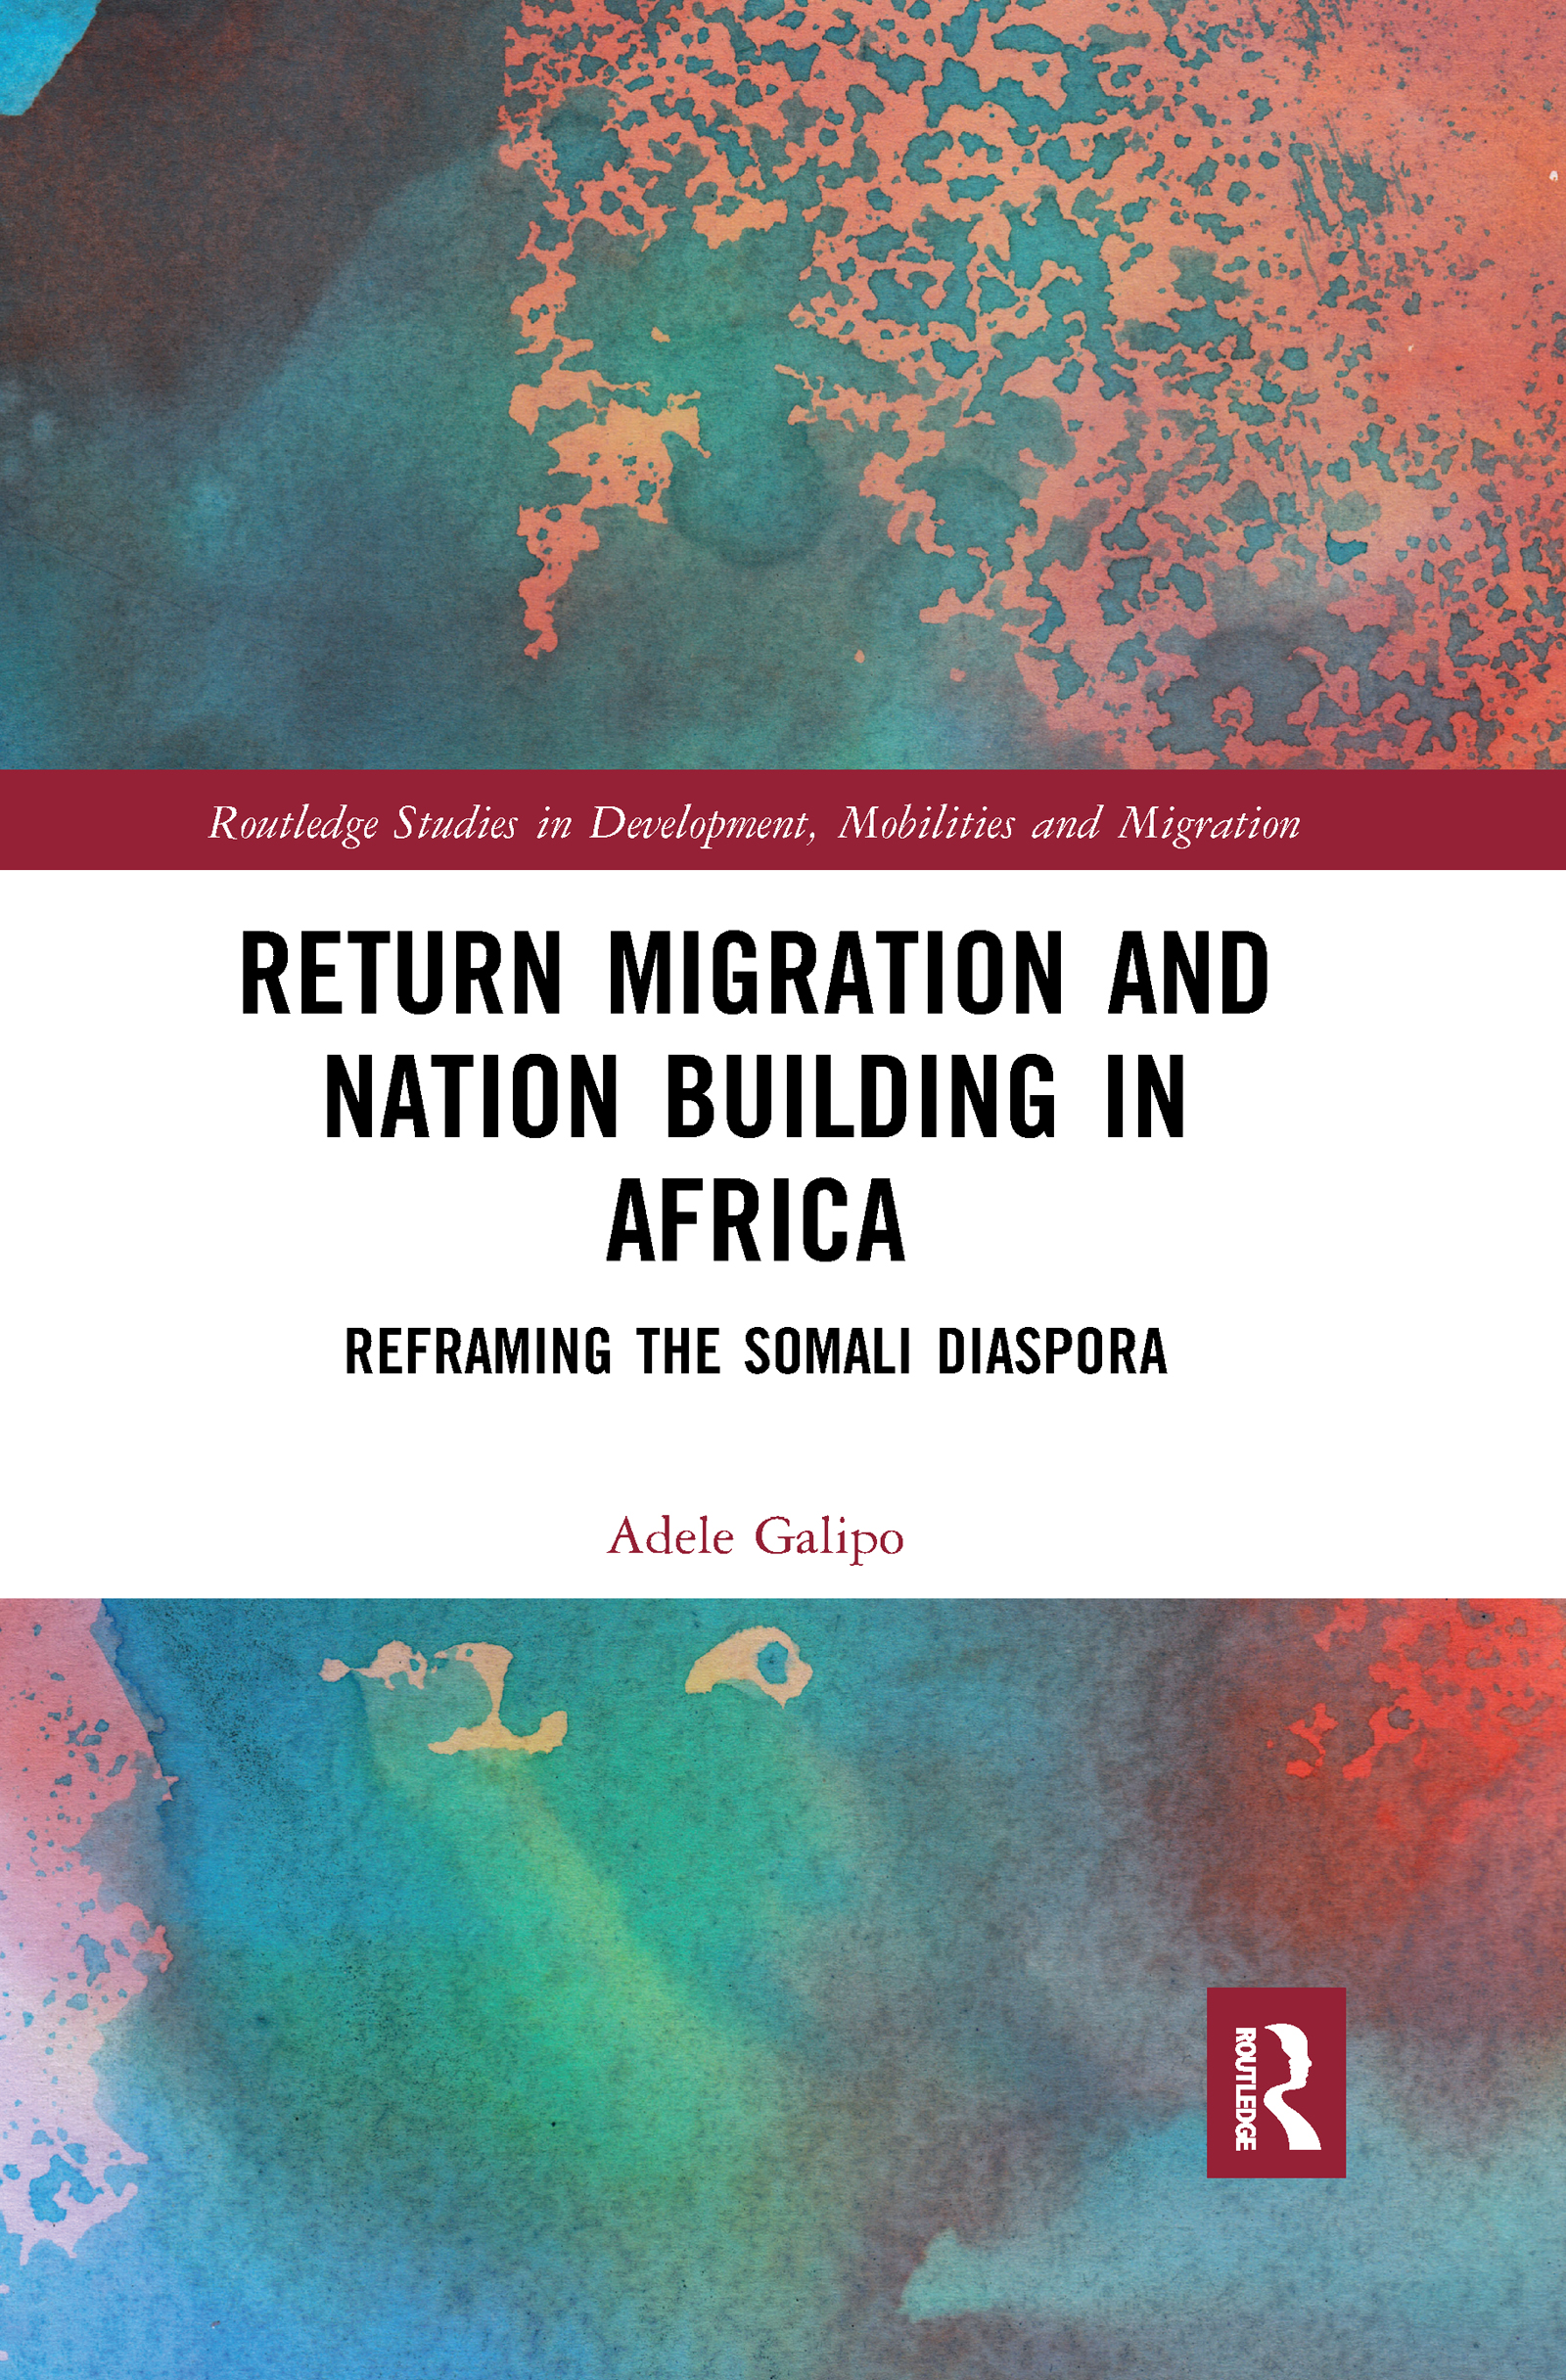 Return Migration and Nation Building in Africa